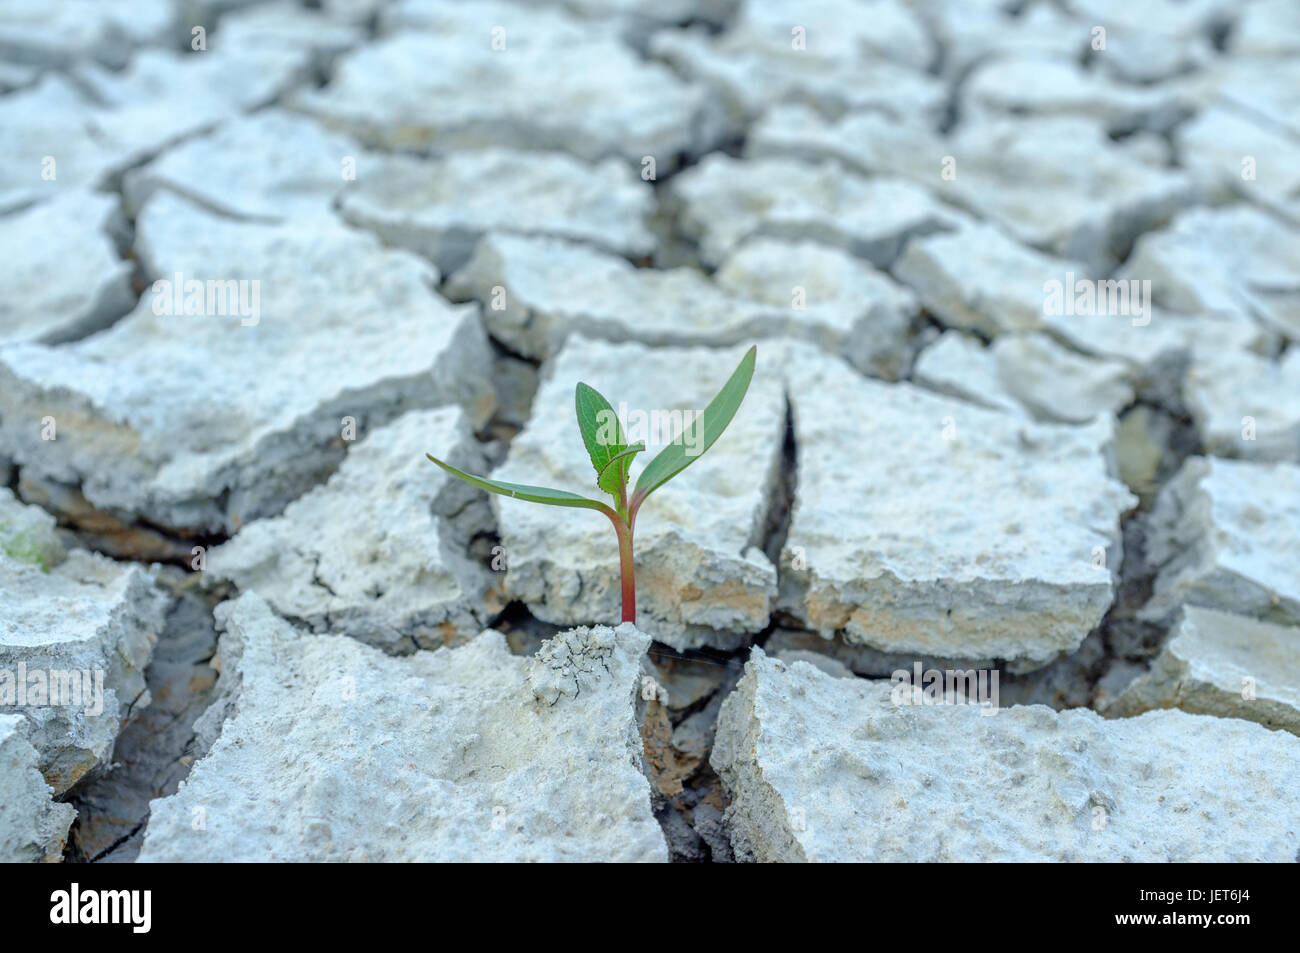 A young plant is born despite the arid soil - Stock Image